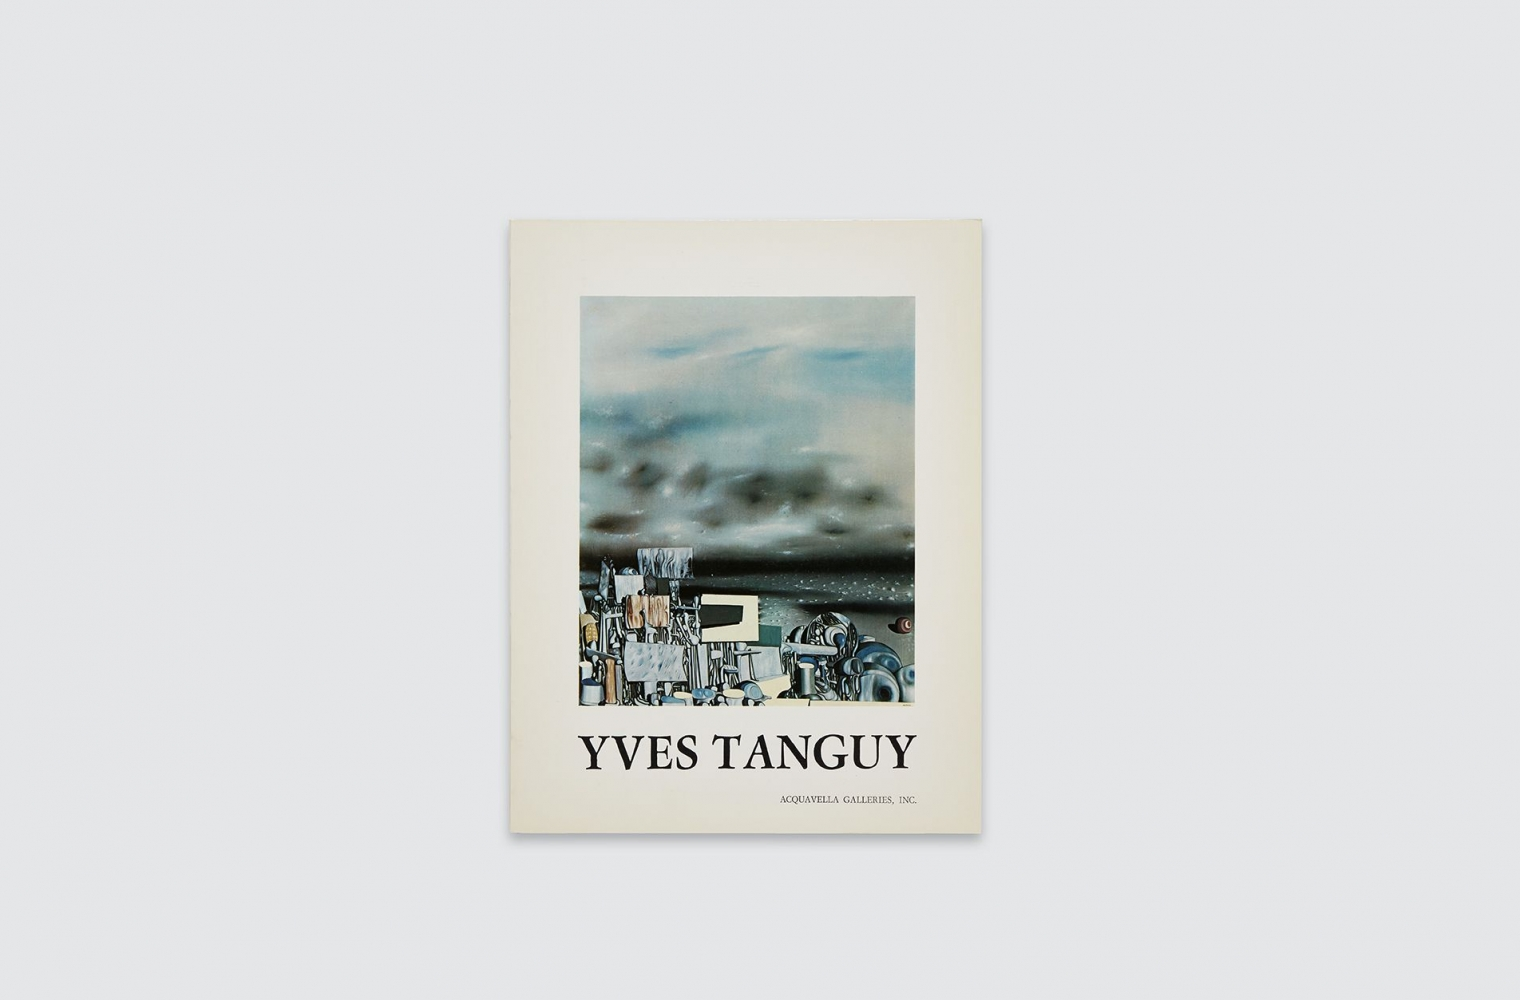 Catalogue for Yves Tanguy exhibition, fall 1974.